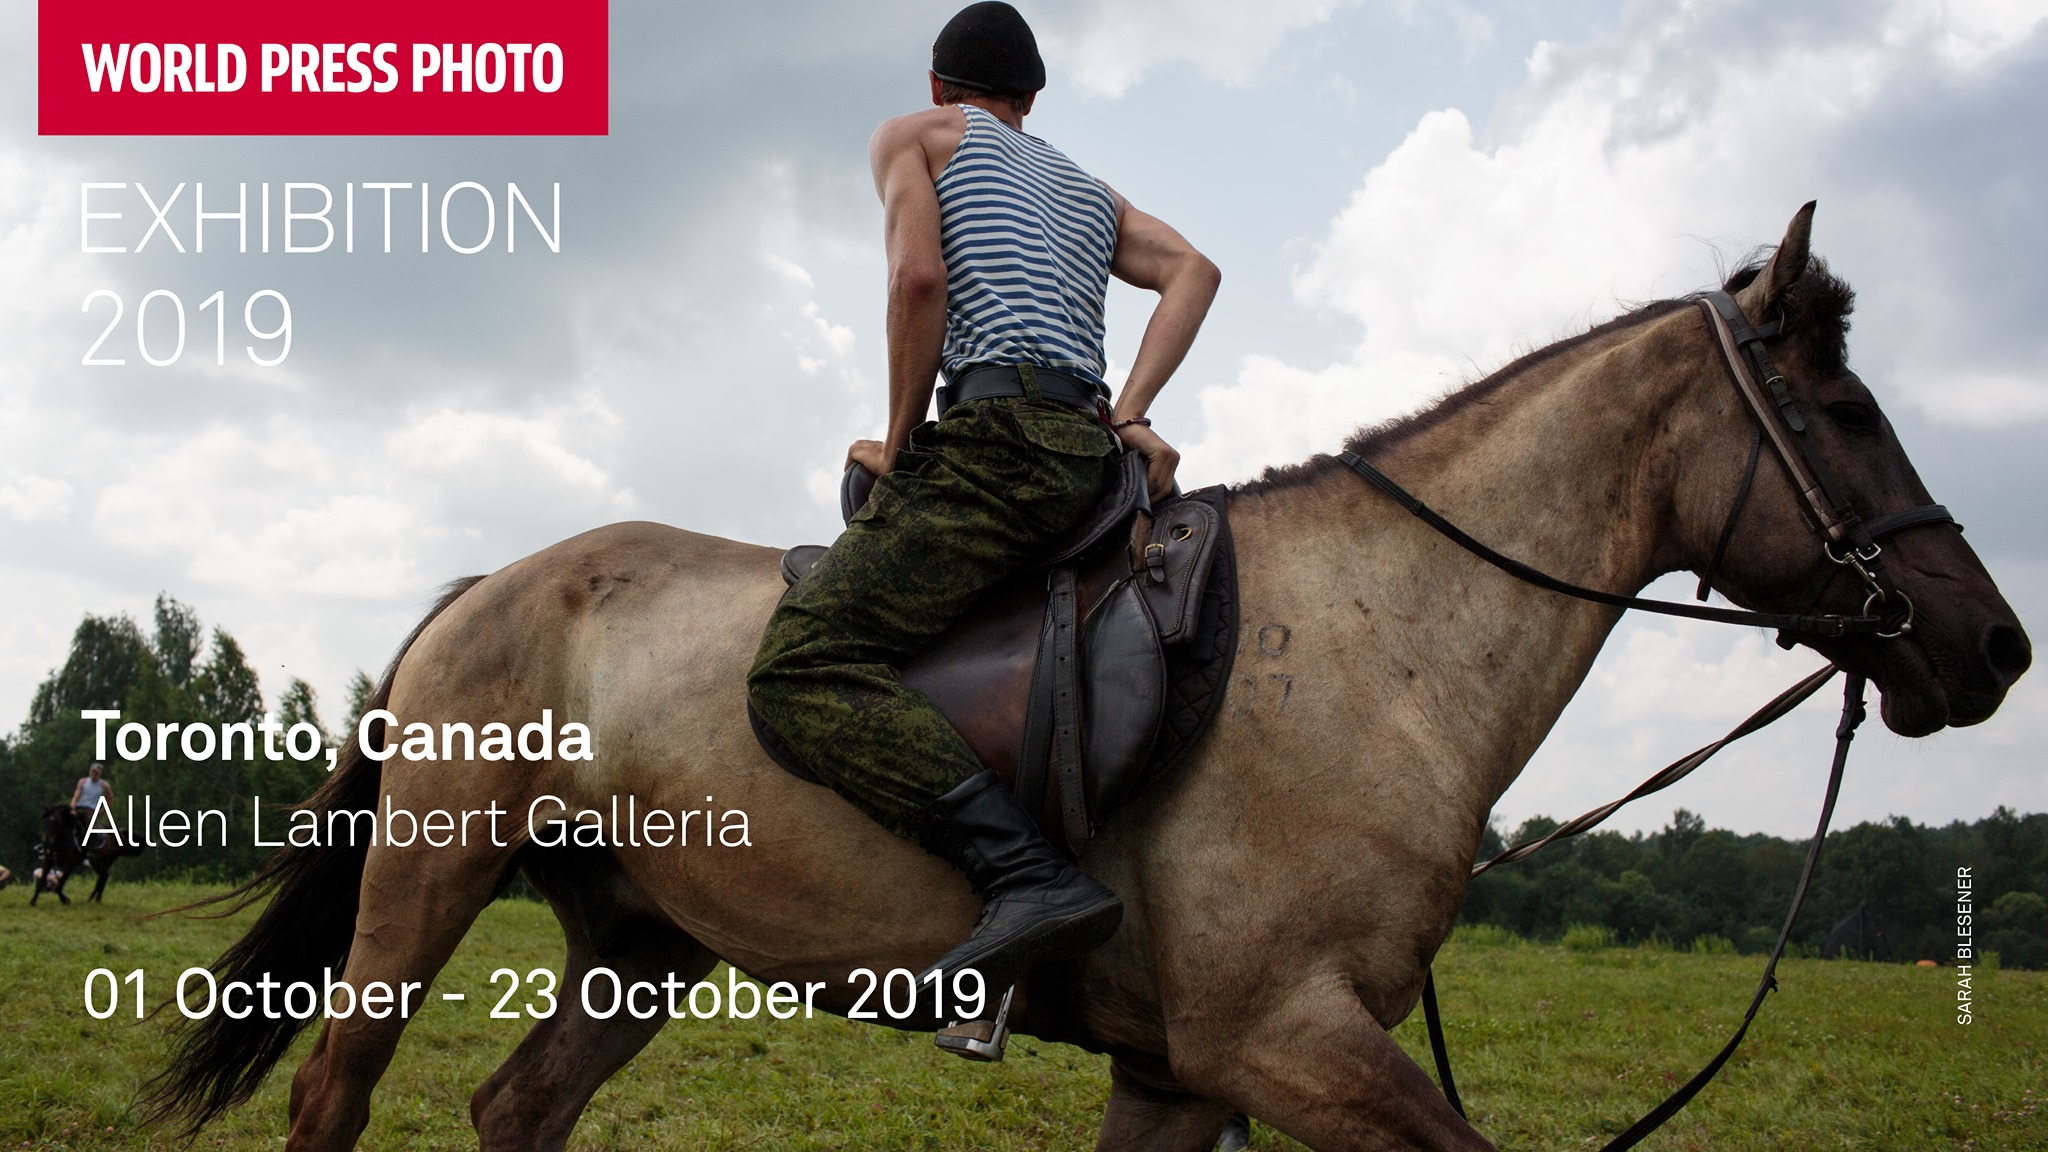 World Press Photo Exhibition 2019